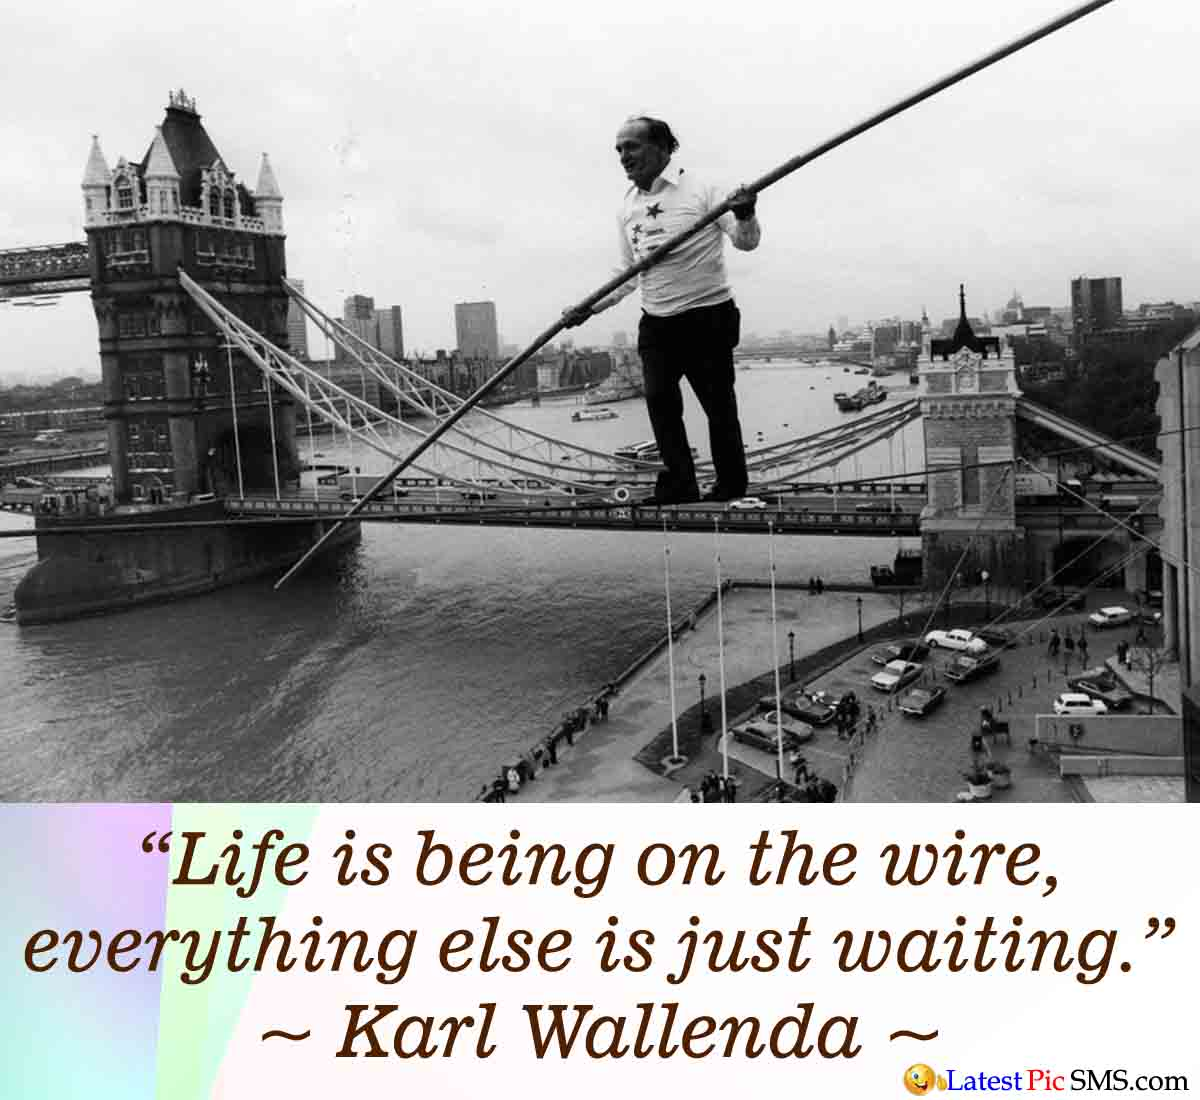 Karl Wallenda Famous Life quote